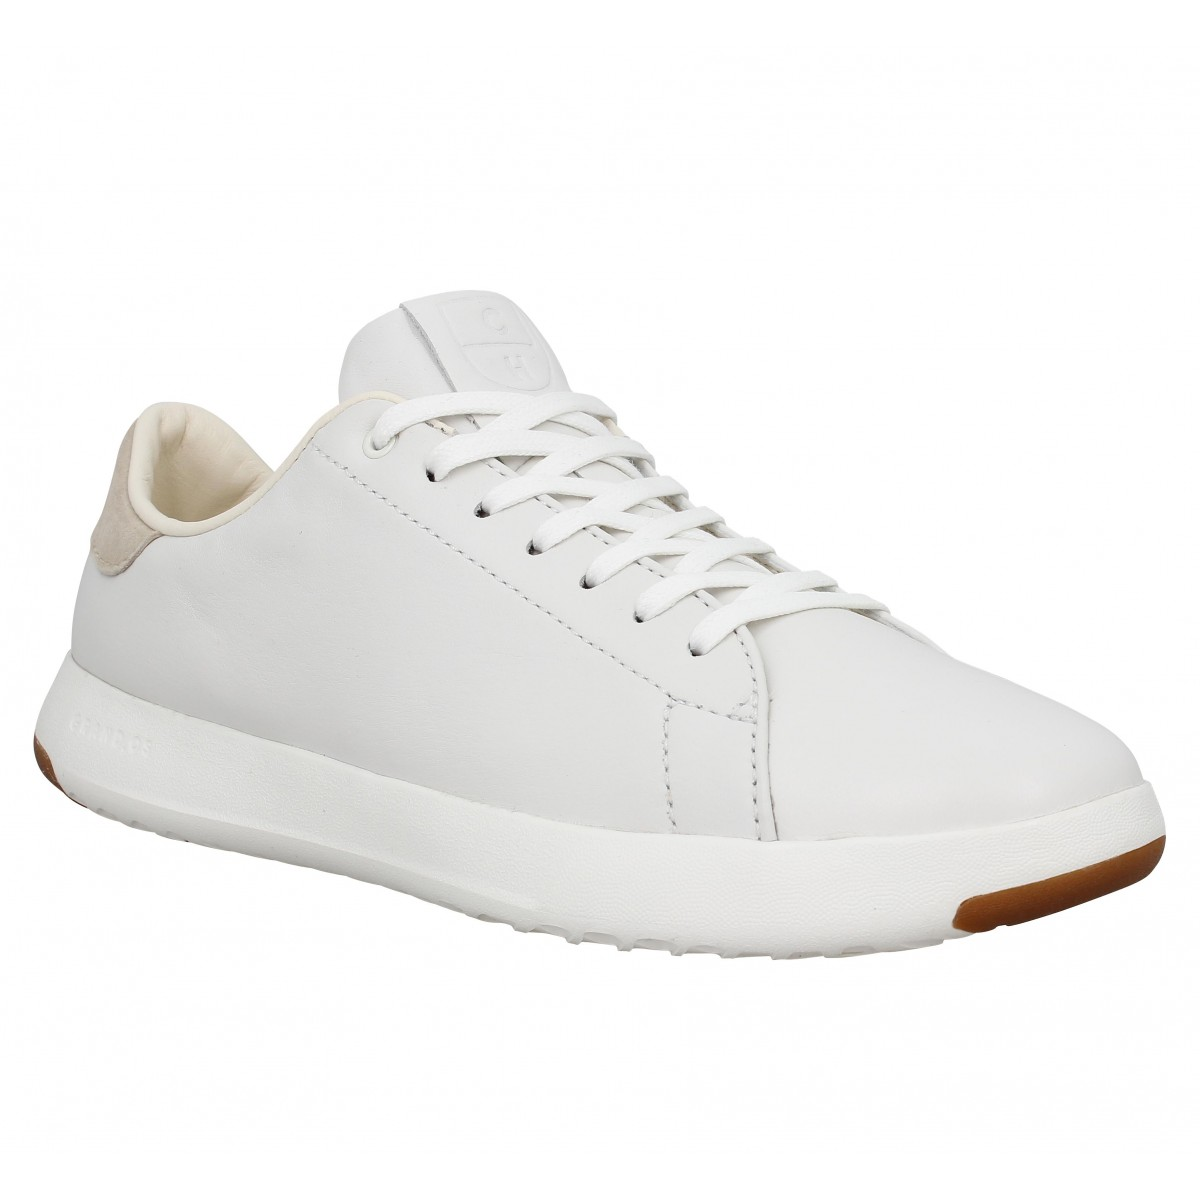 Baskets COLE HAAN GP Tennis cuir Homme Blanc